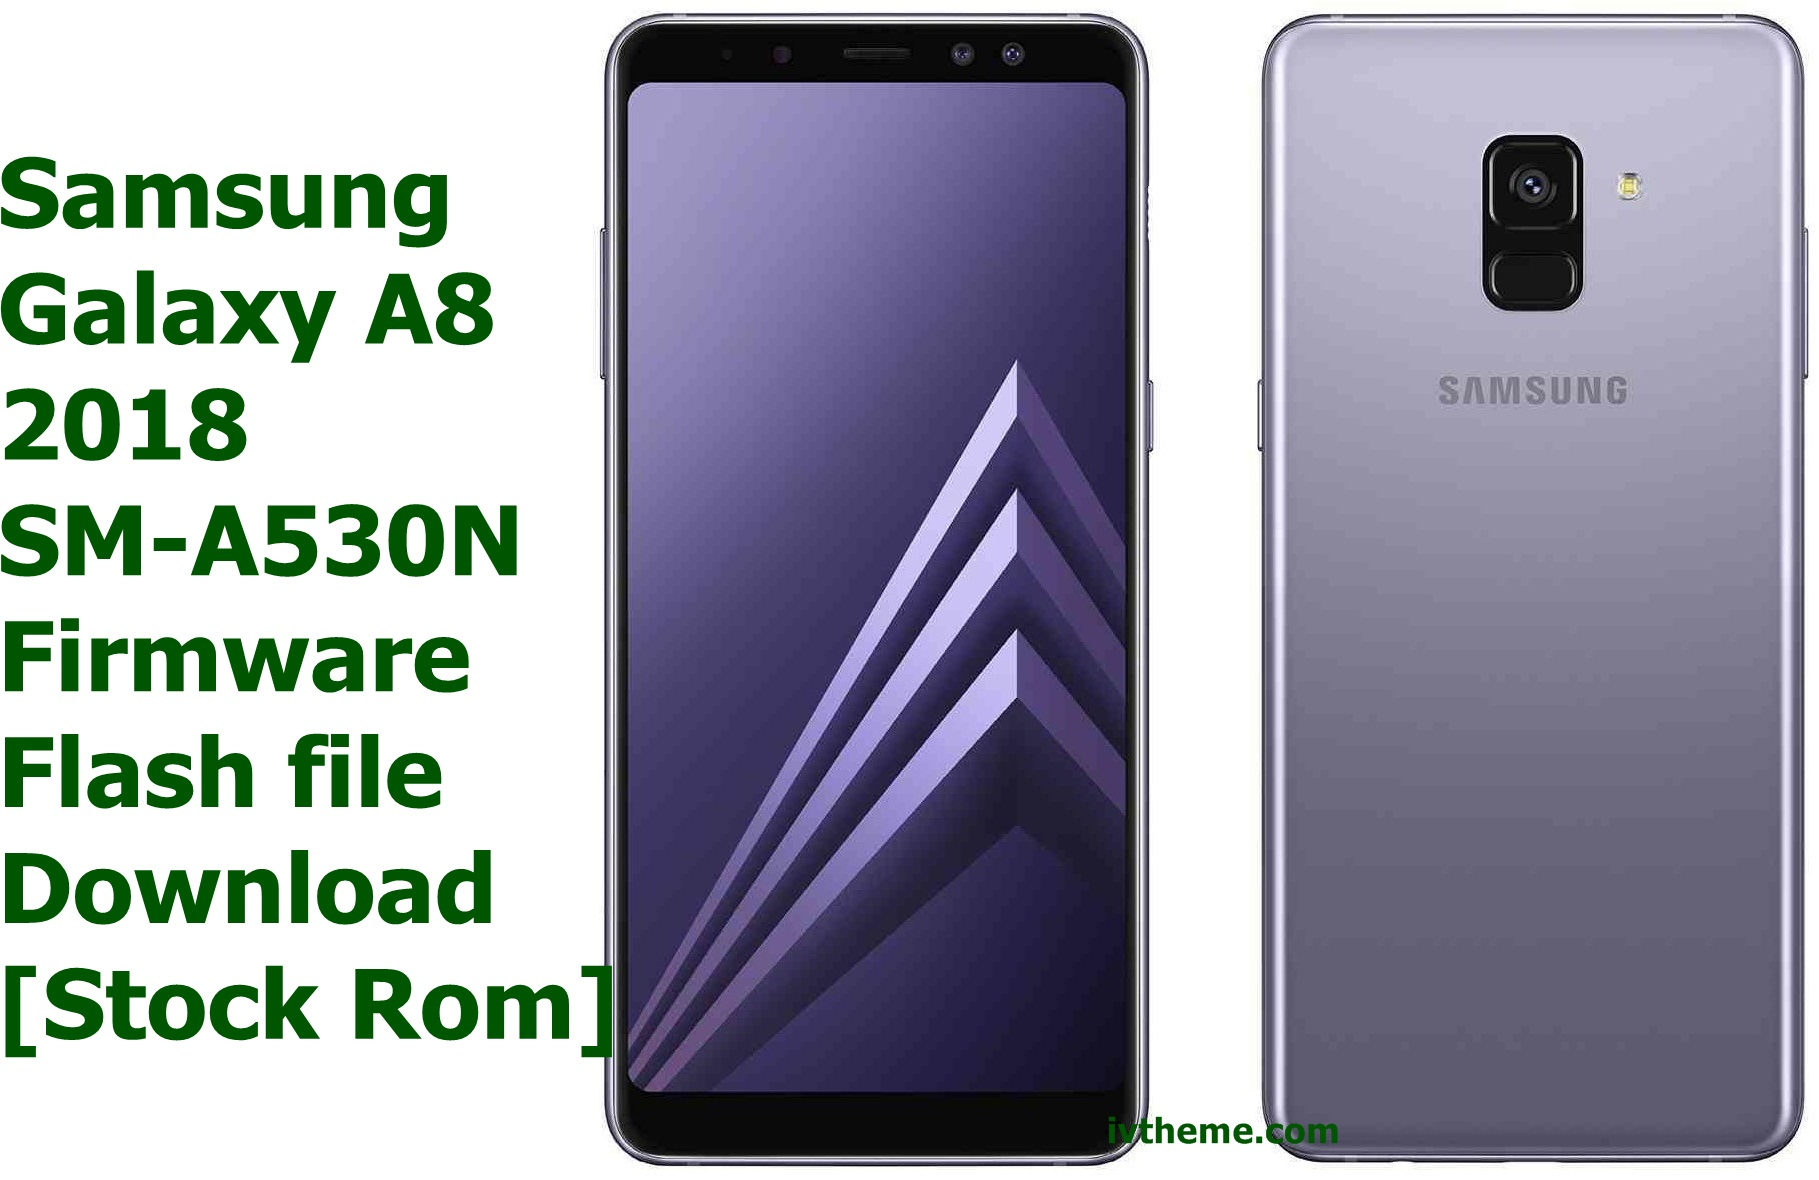 Download Samsung Galaxy A8 2018 SM-A530N Firmware Flash File and also learn how you can use this Stock Rom to restore your Samsung Galaxy A8 2018 SM-A530N